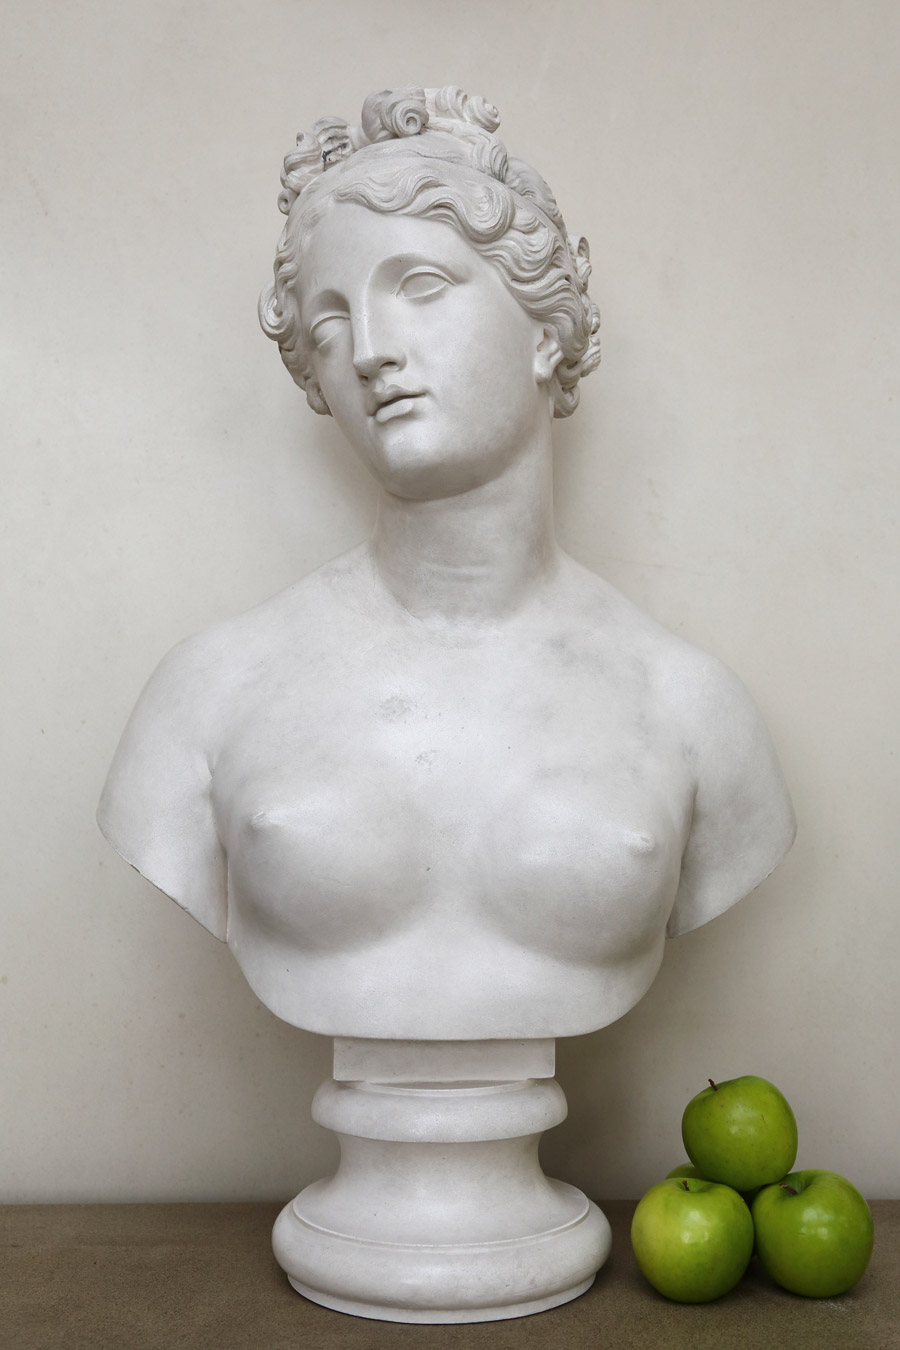 Copy of a Marble of Venus, Goddess of Love